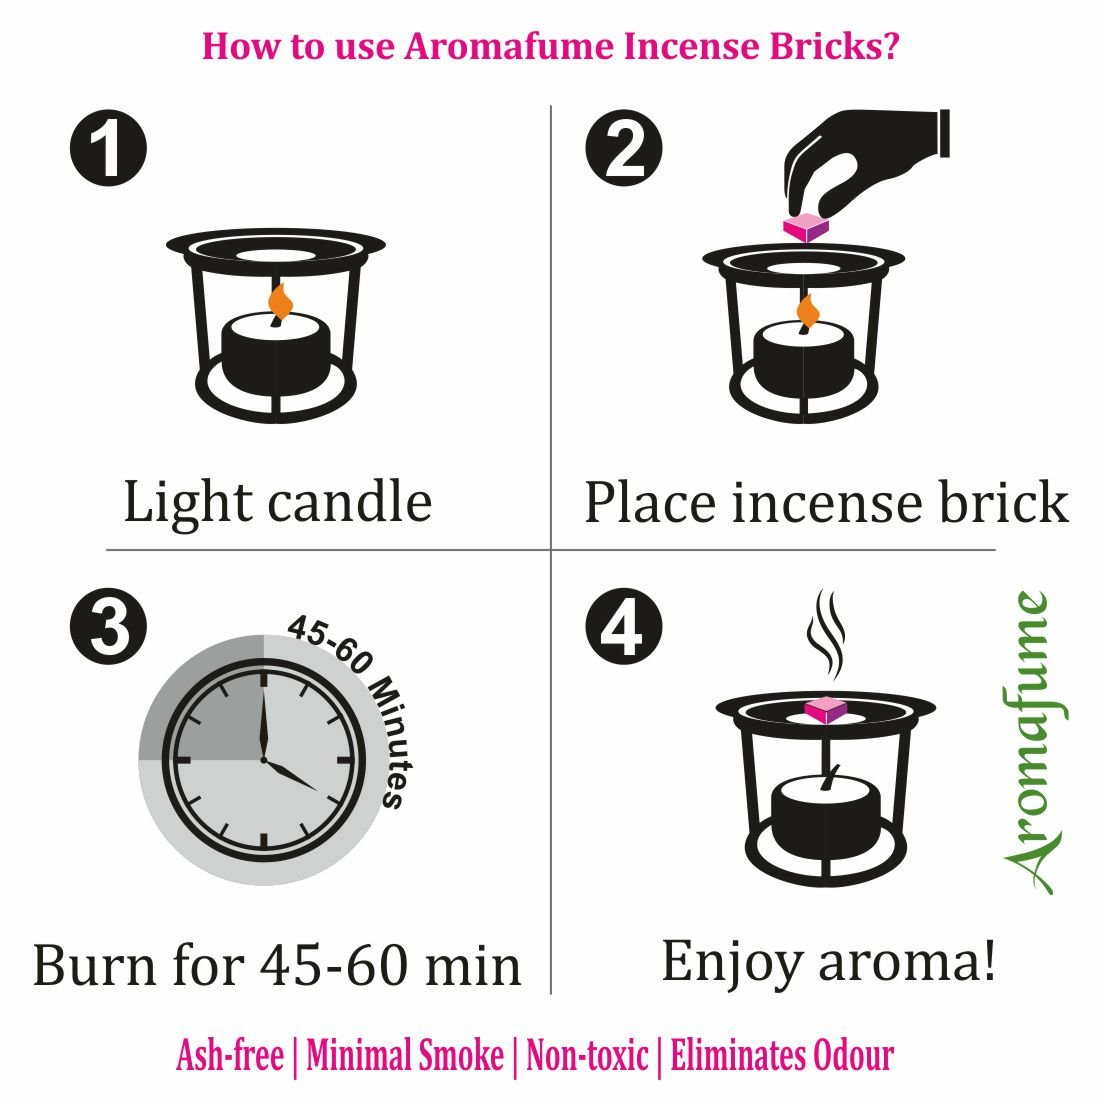 Aromafume 7 Chakra Incense Bricks Starter Kit containing Tree of Life Exotic Incense Diffuser (Gift Set). Ideal for Meditation, Purification, Yoga, Chakra Alignment, Relaxation, Healing & Rituals by Aromafume (Image #8)